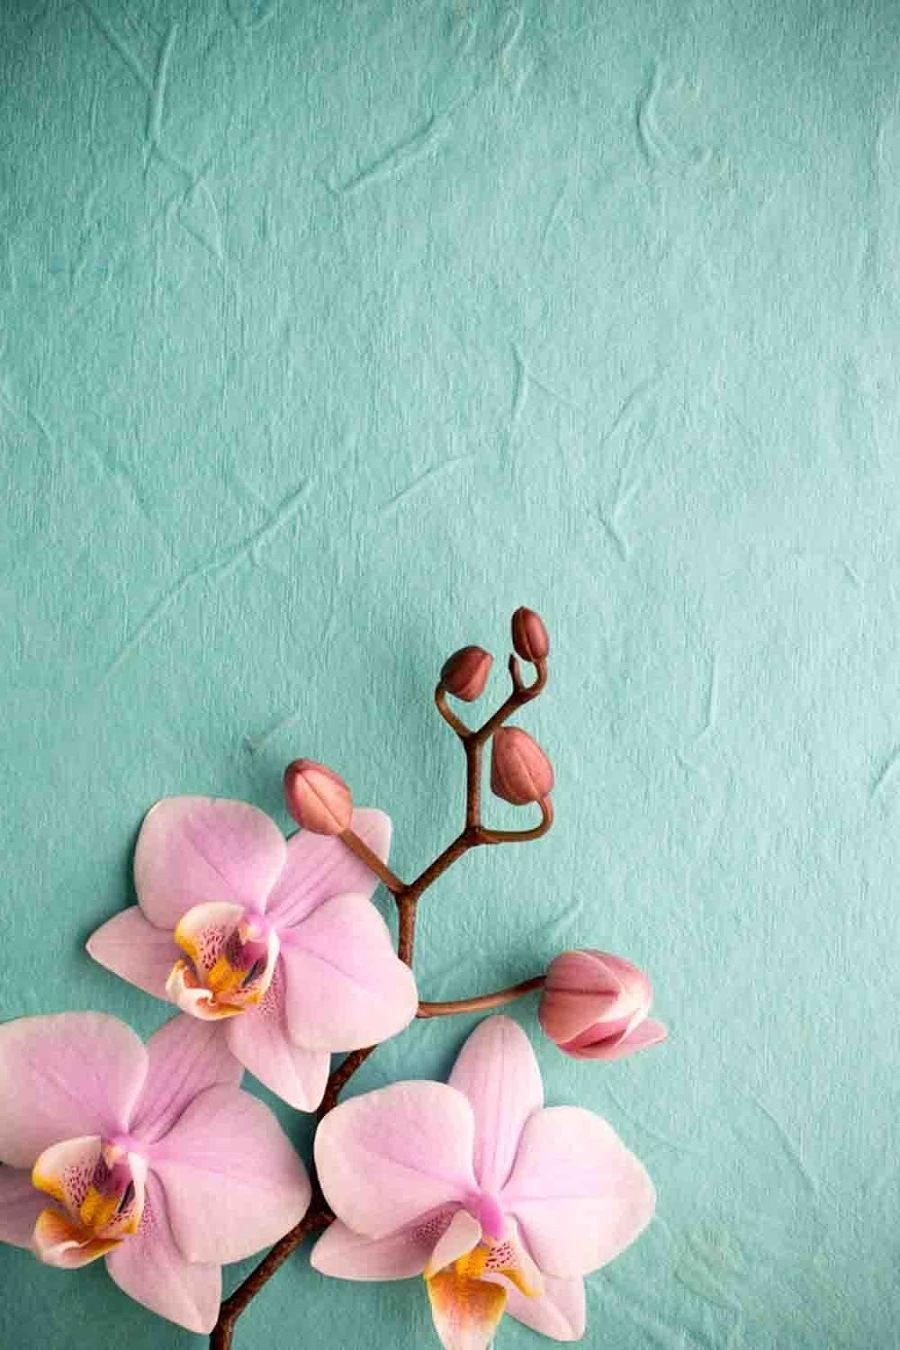 Pink Orchid Wallpaper Iphone D Iphone Wallpaper   Pink Orchid ...